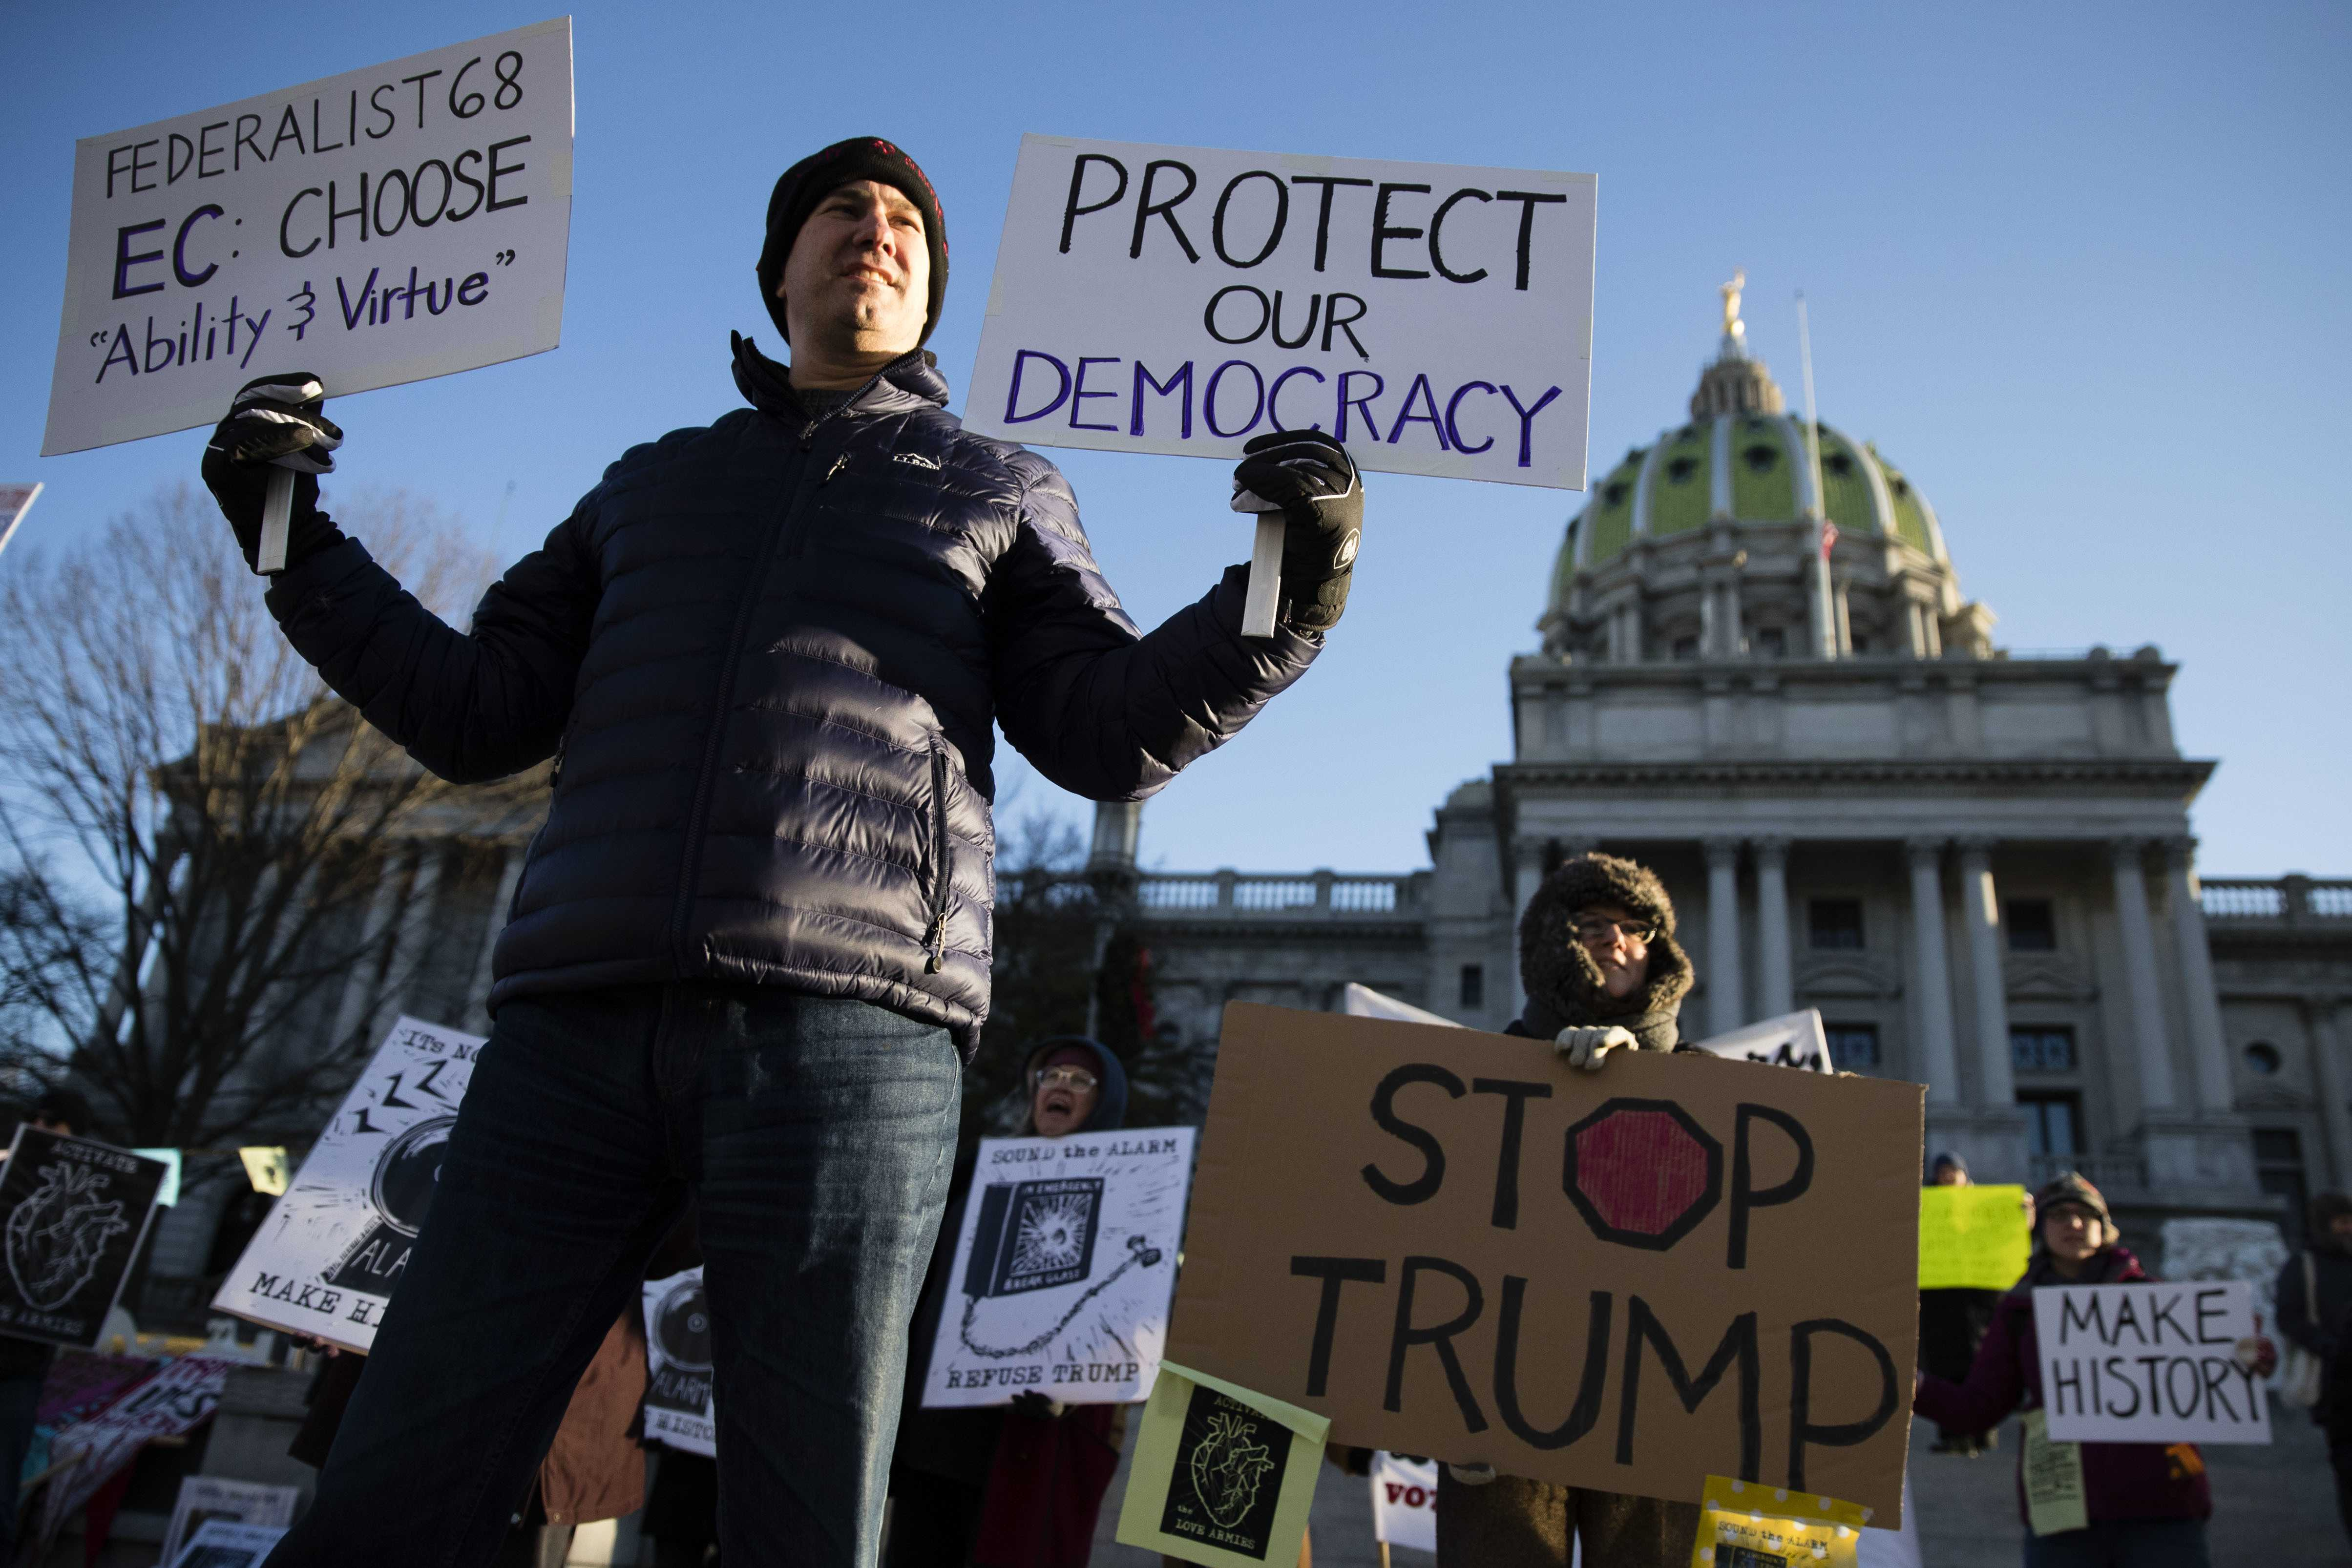 Protesters demonstrate ahead of Pennsylvania's 58th Electoral College at the state Capitol in Harrisburg, Pennsylvania, Monday, Dec. 19, 2016. The demonstrators were waving signs and chanting in freezing temperatures Monday morning as delegates began arriving at the state Capitol to cast the state's electoral votes for president. (Matt Rourke | AP Photo)